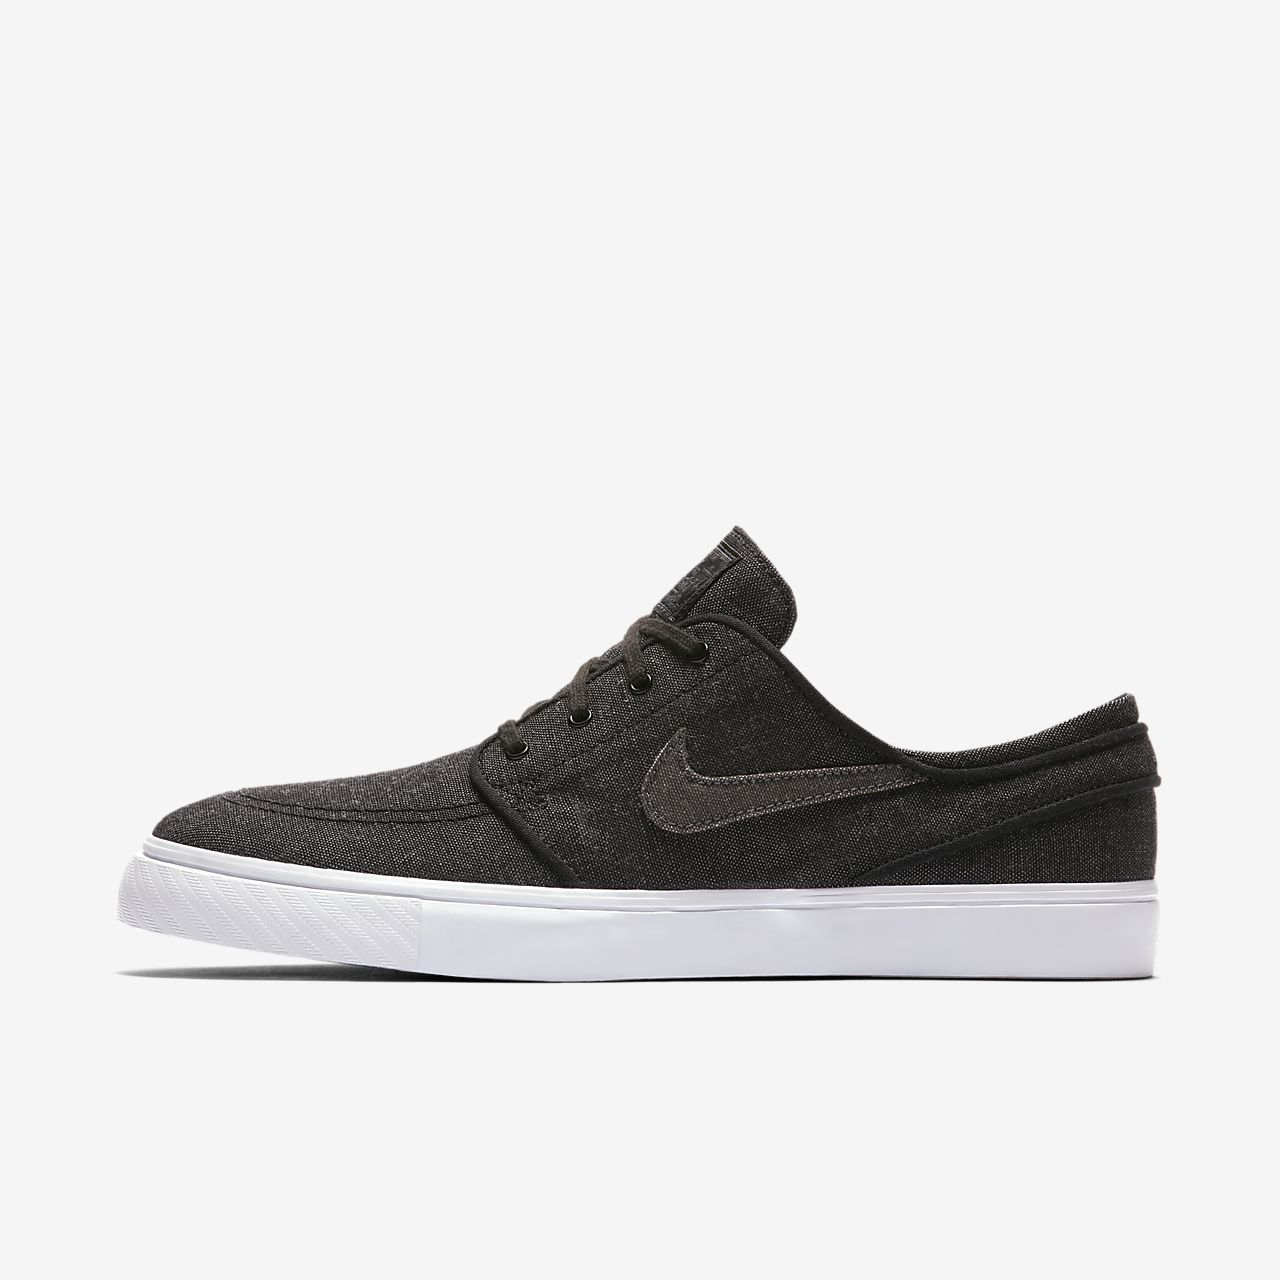 Zoom Stefan Janoski Canvas Deconstructed S Sneakers black / anthracite / white / hyNike roseijzW